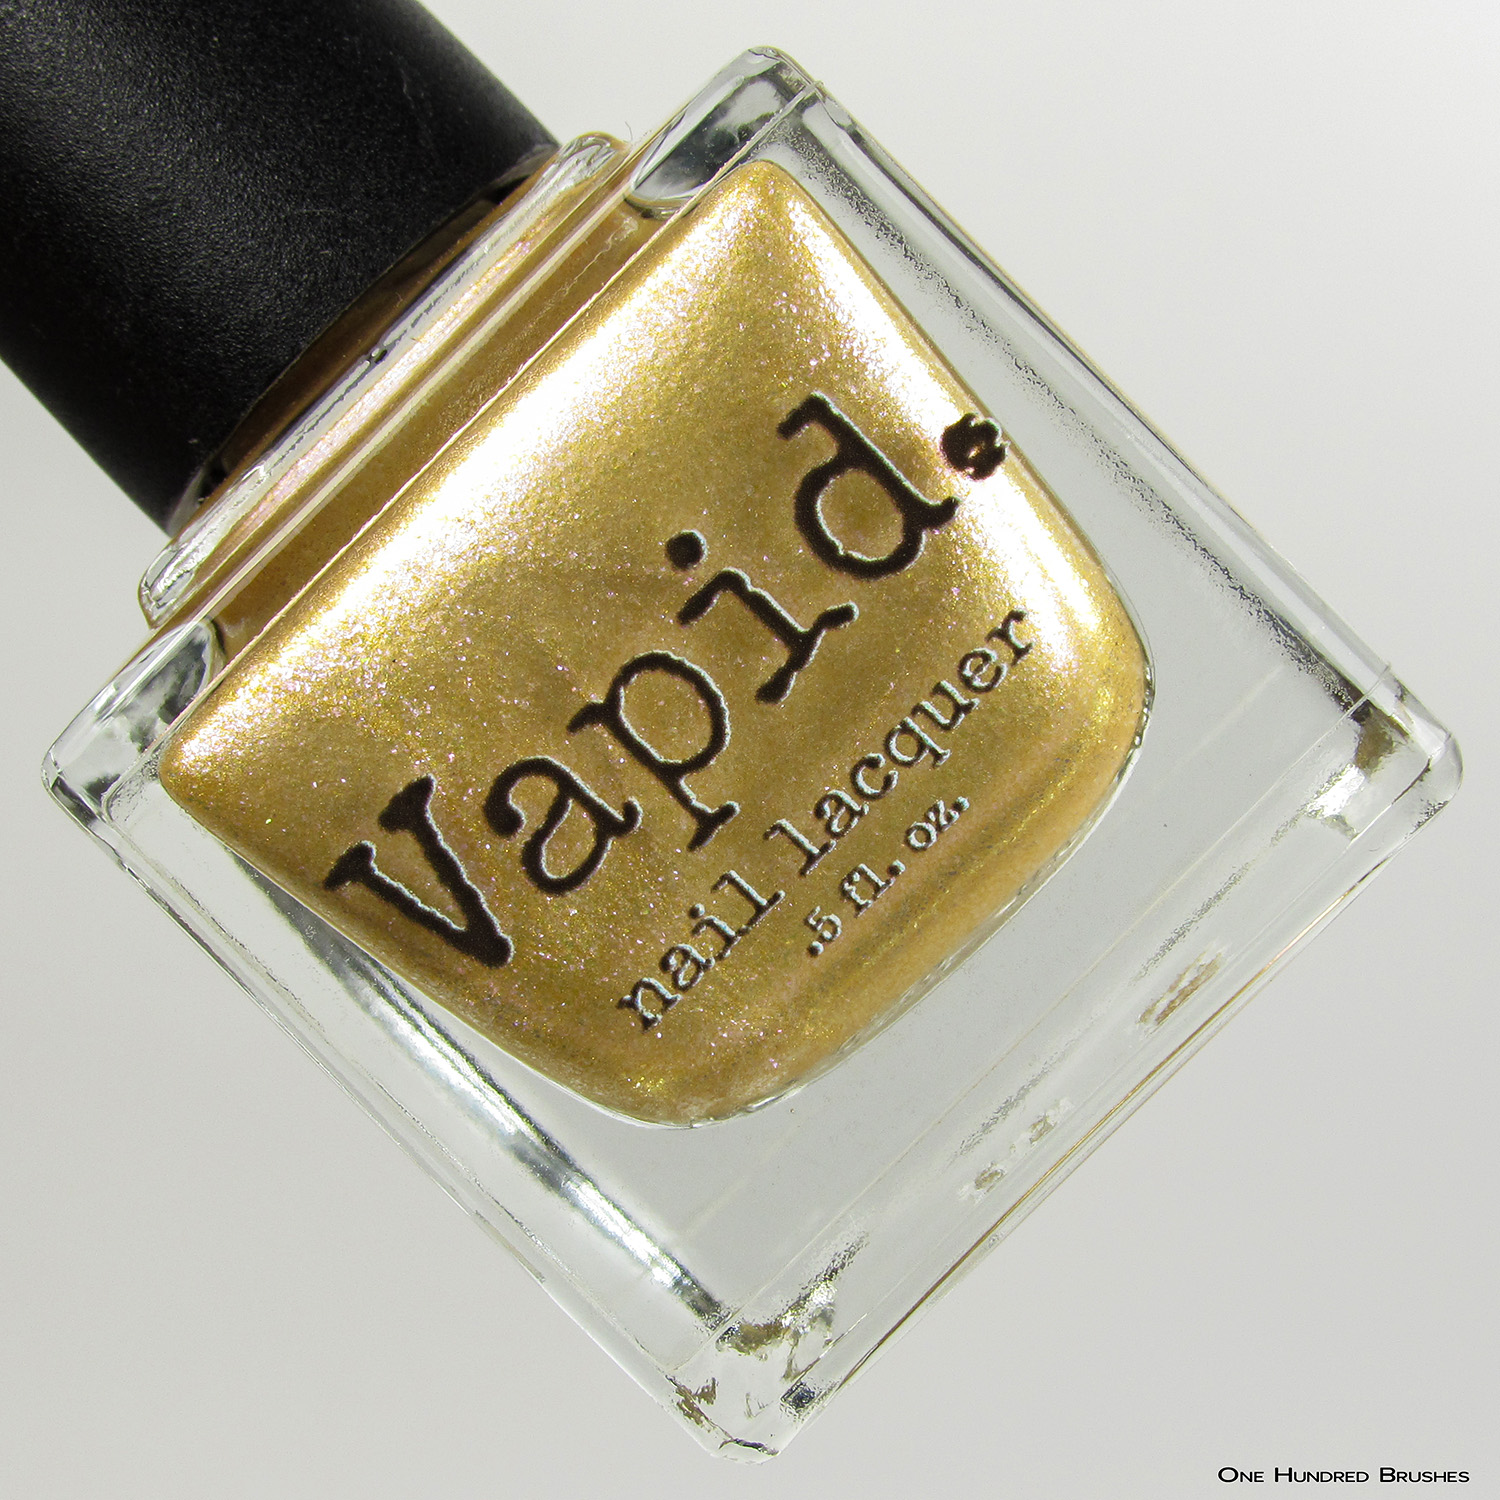 Introspection - Vapid Lacquer May 2019